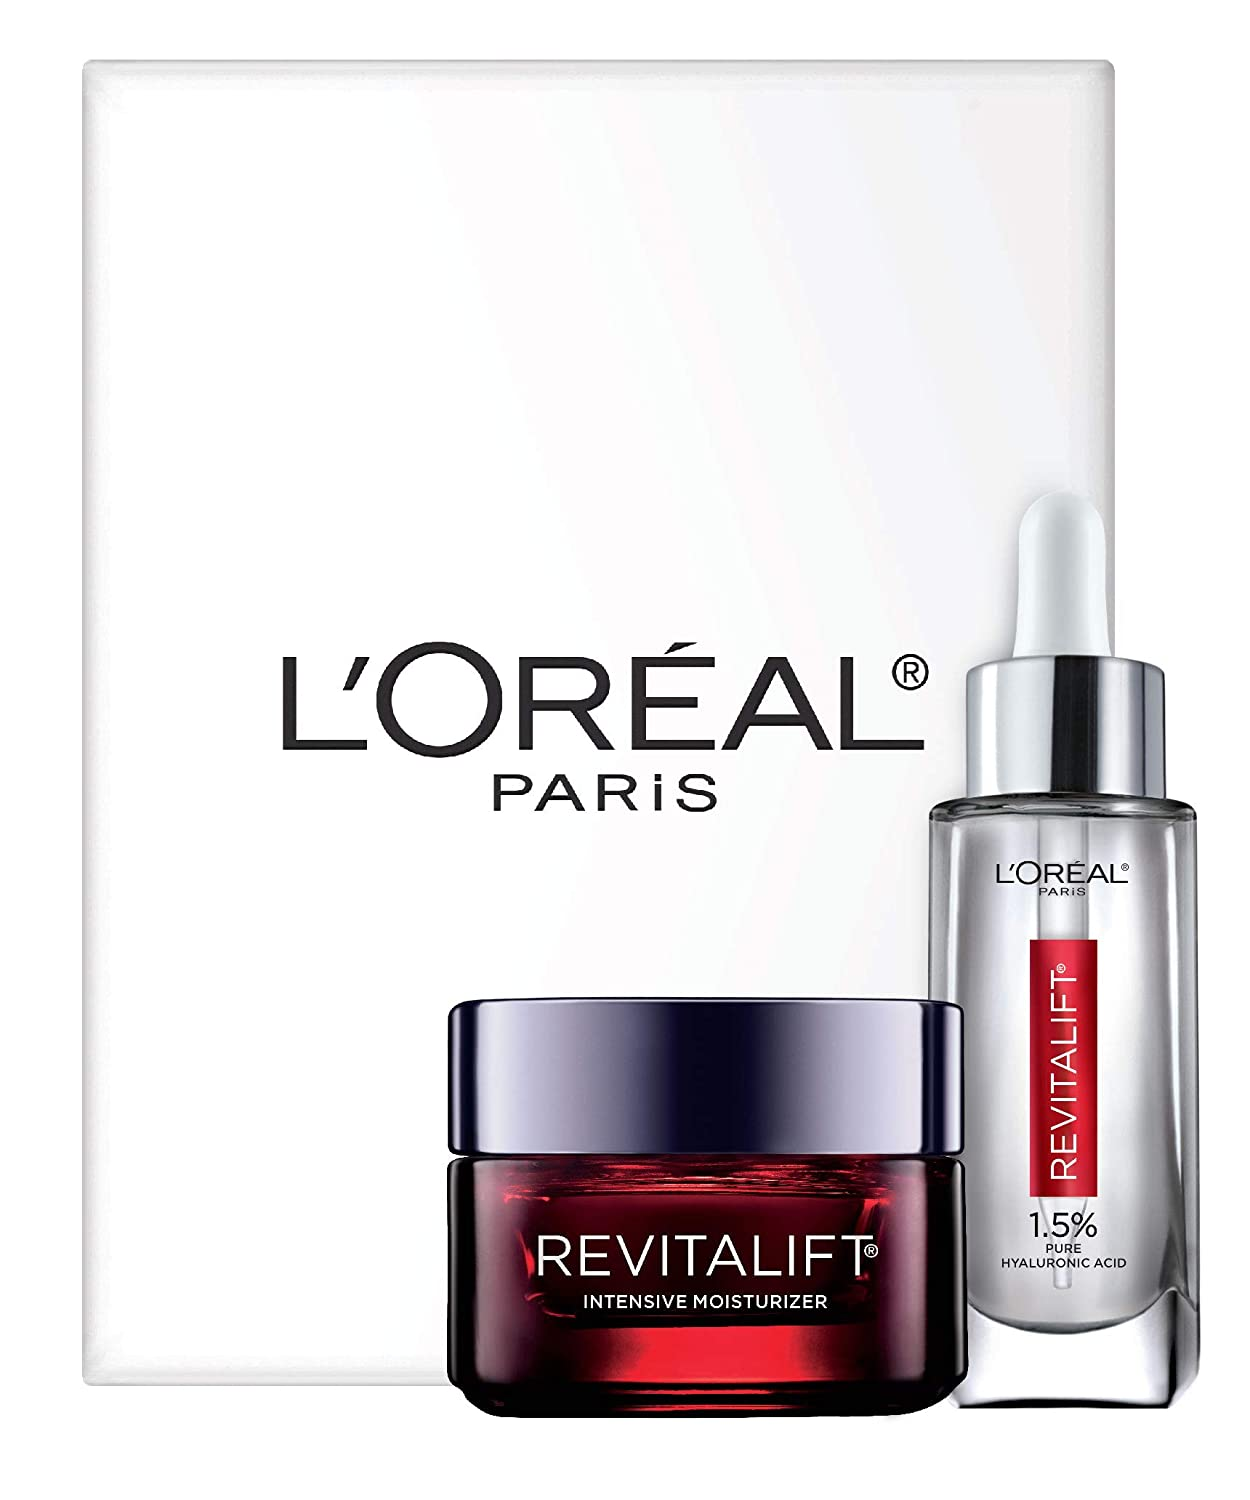 L'Oreal Paris Skin Care Revitalift Hyaluronic Acid Facial Serum and Triple Power Face Moisturizer Anti-Aging Skin Care Set, 1 Kit